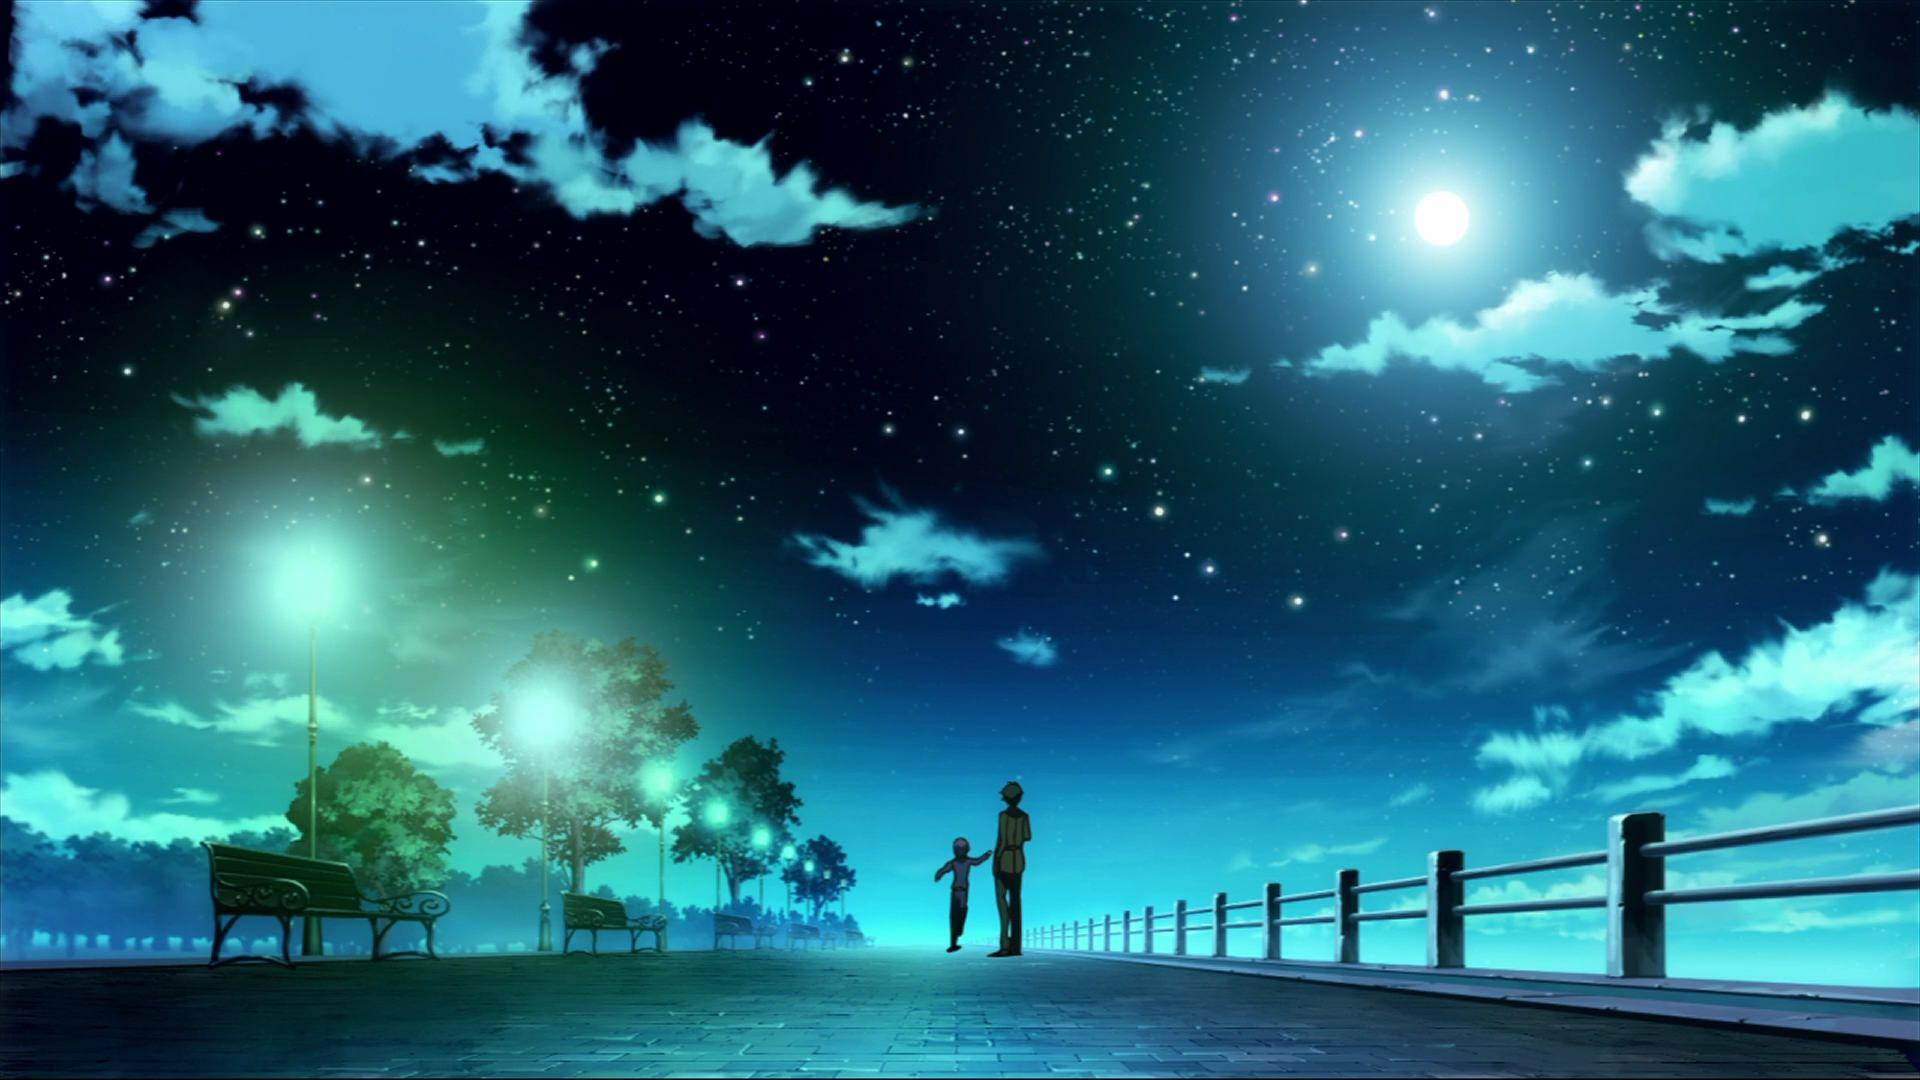 Perfect Pictures Anime Blue Starry Sky Beautiful Night